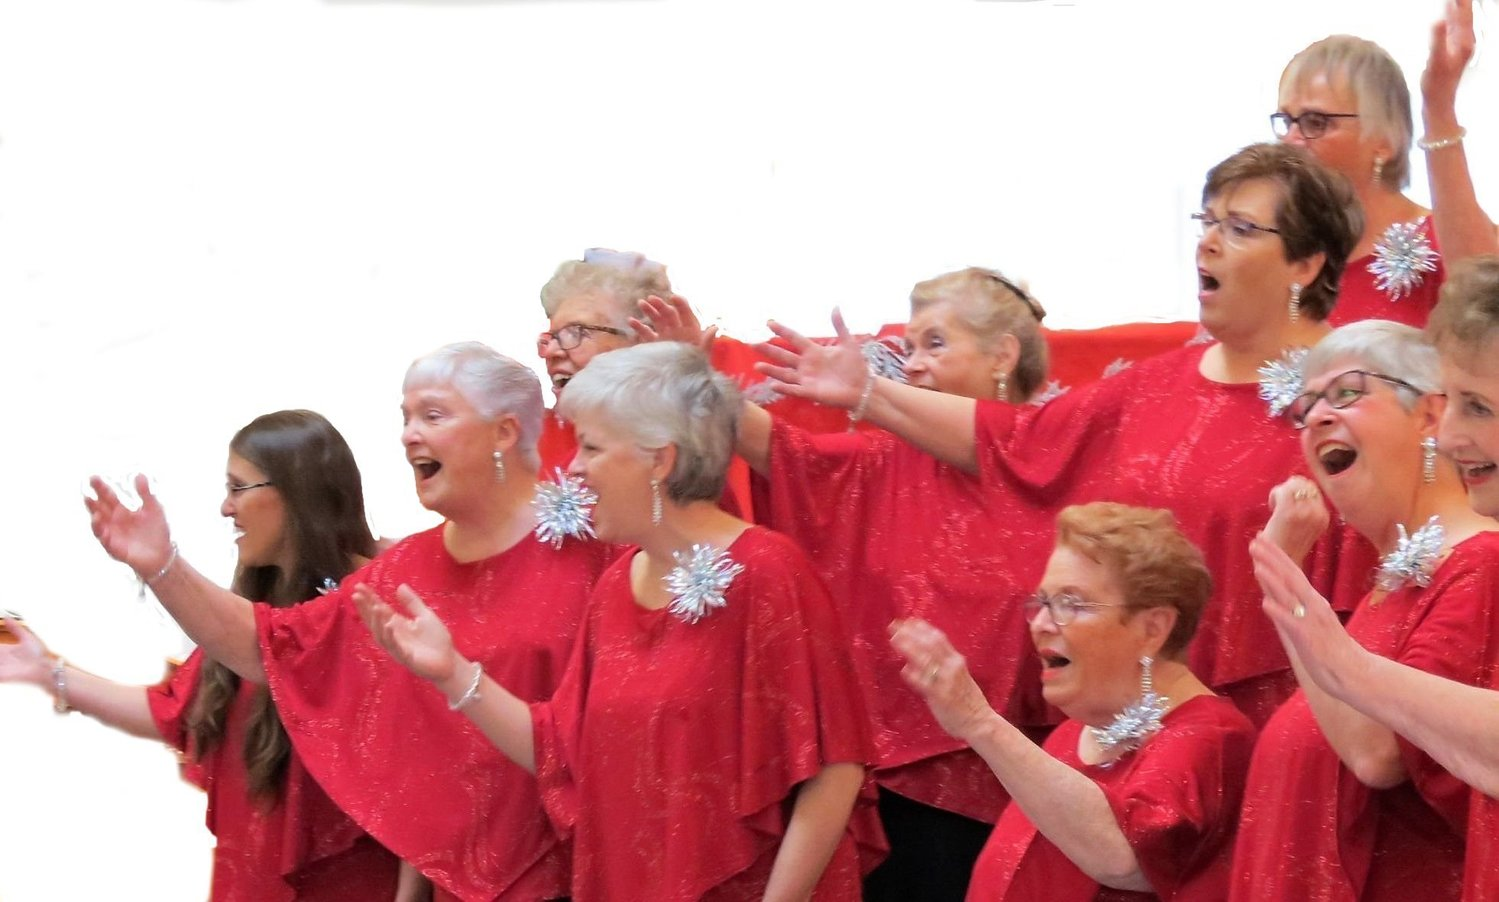 Harmony Heritage women's a cappella chorus holds open rehearsals on Tuesday nights at 7:15 PM at St. Paul's Episcopal Church in Pawtucket.